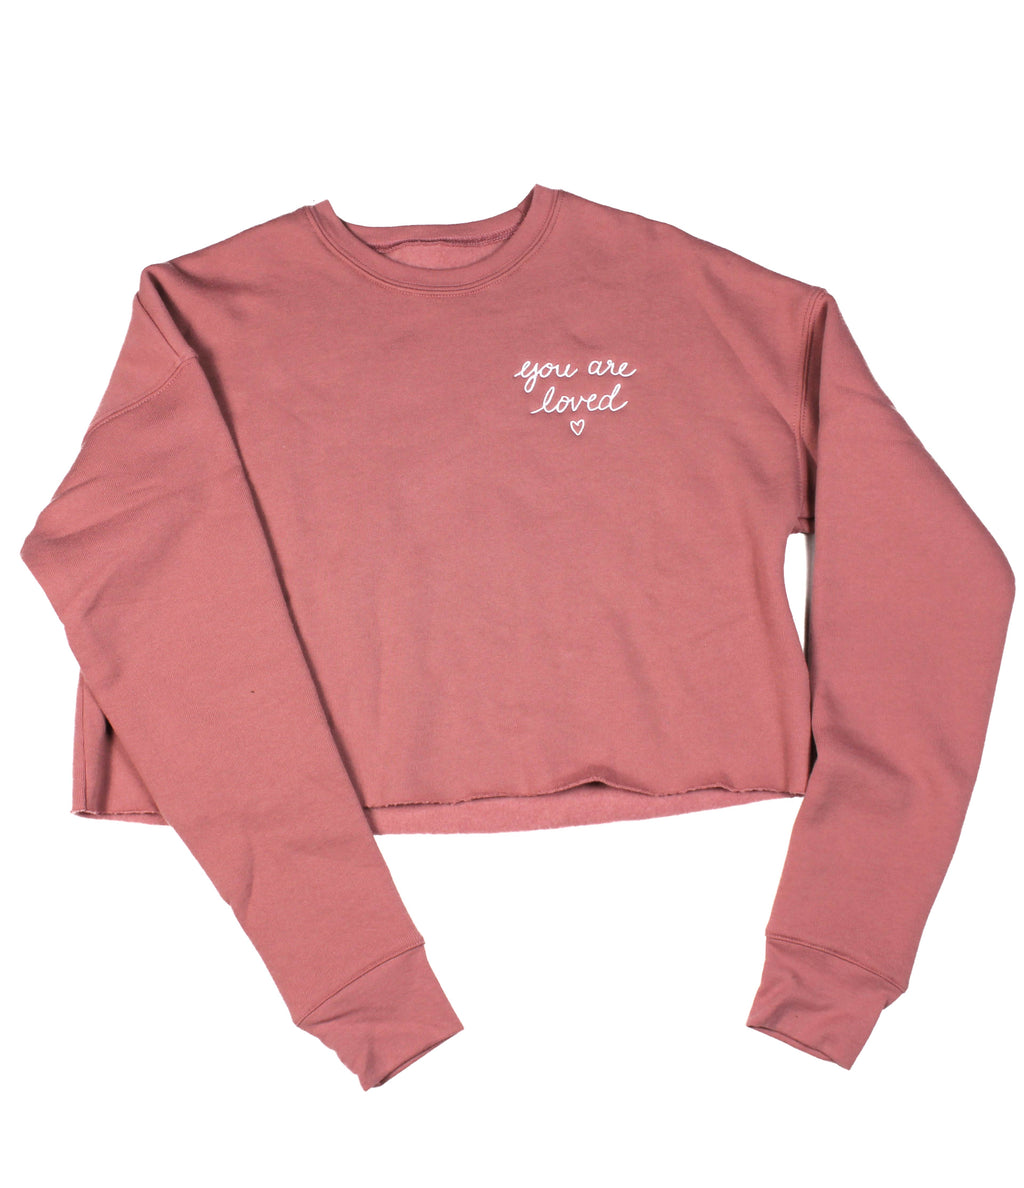 YOU ARE LOVED EMBROIDERED SCRIPT MAUVE WOMEN'S CROPPED CREW FLEECE